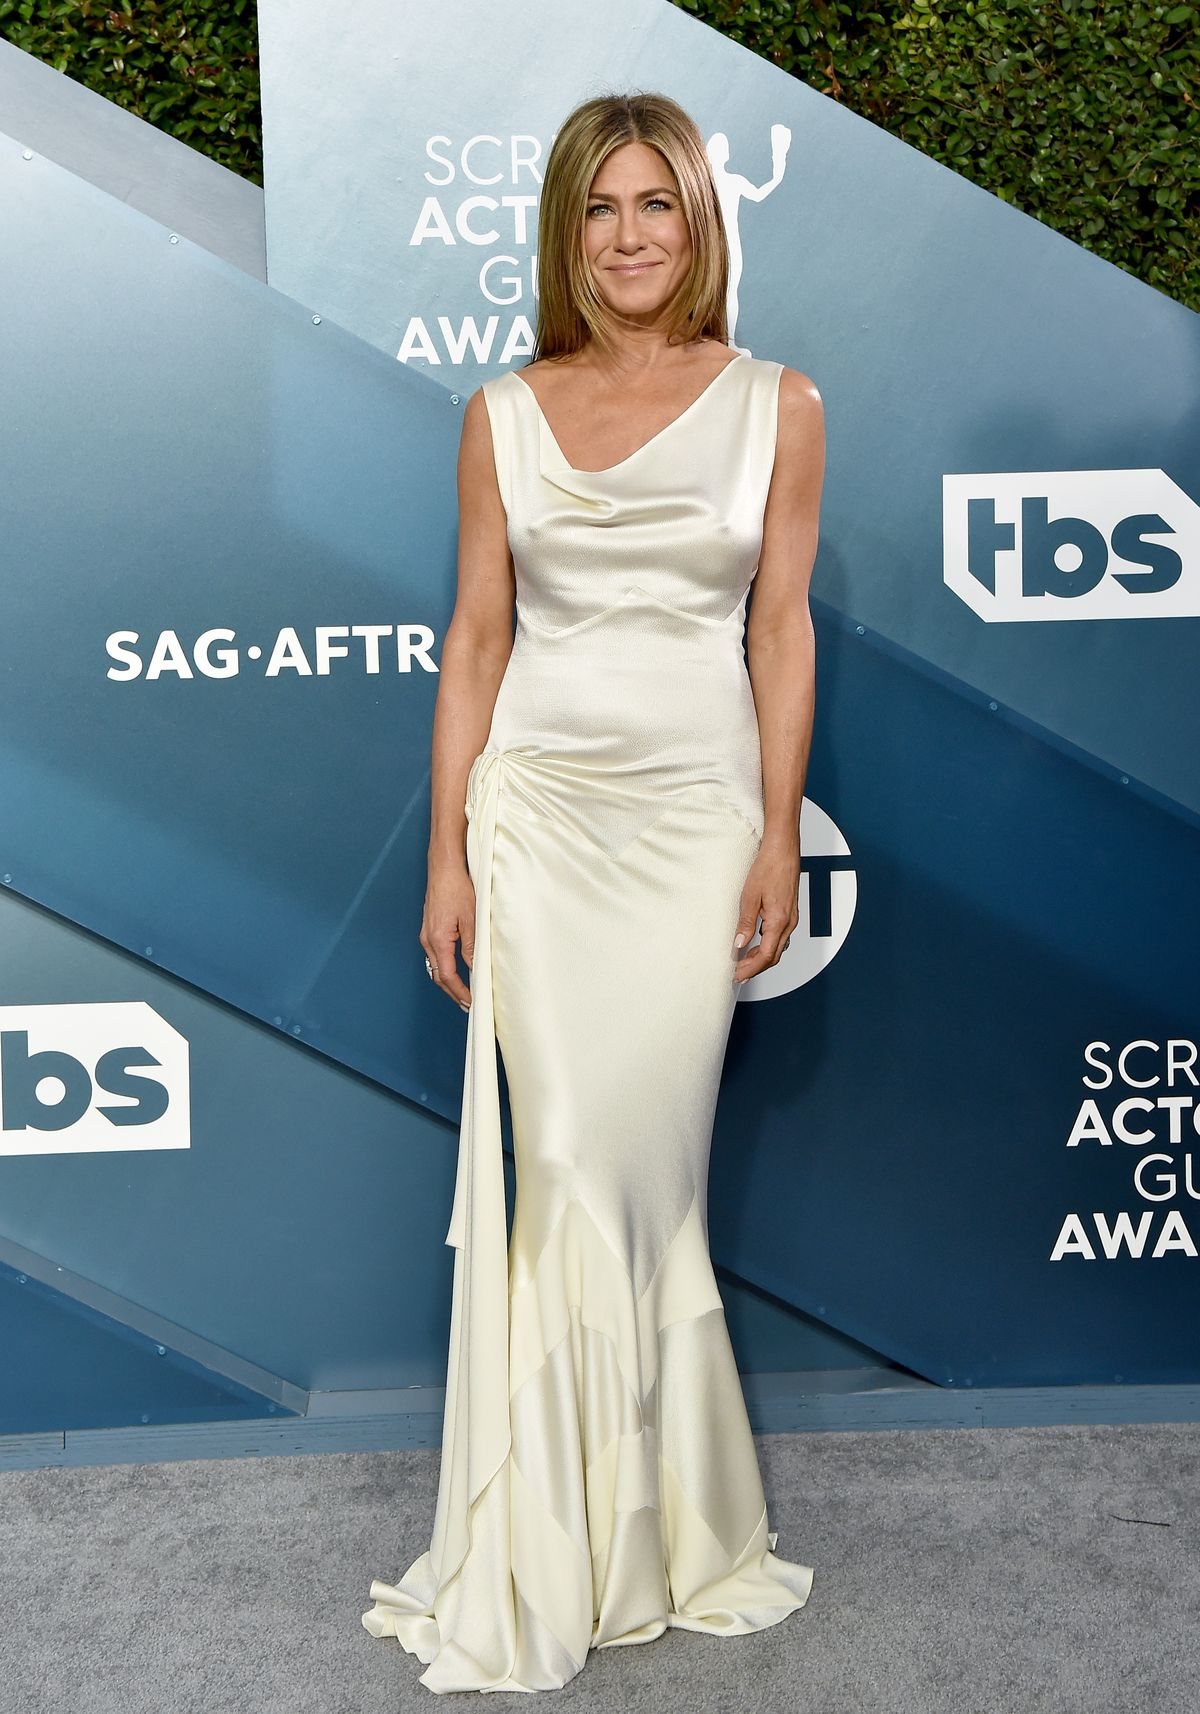 Still Thinking About Jennifer Aniston's SAG Awards Dress? Here's The Story Behind It...